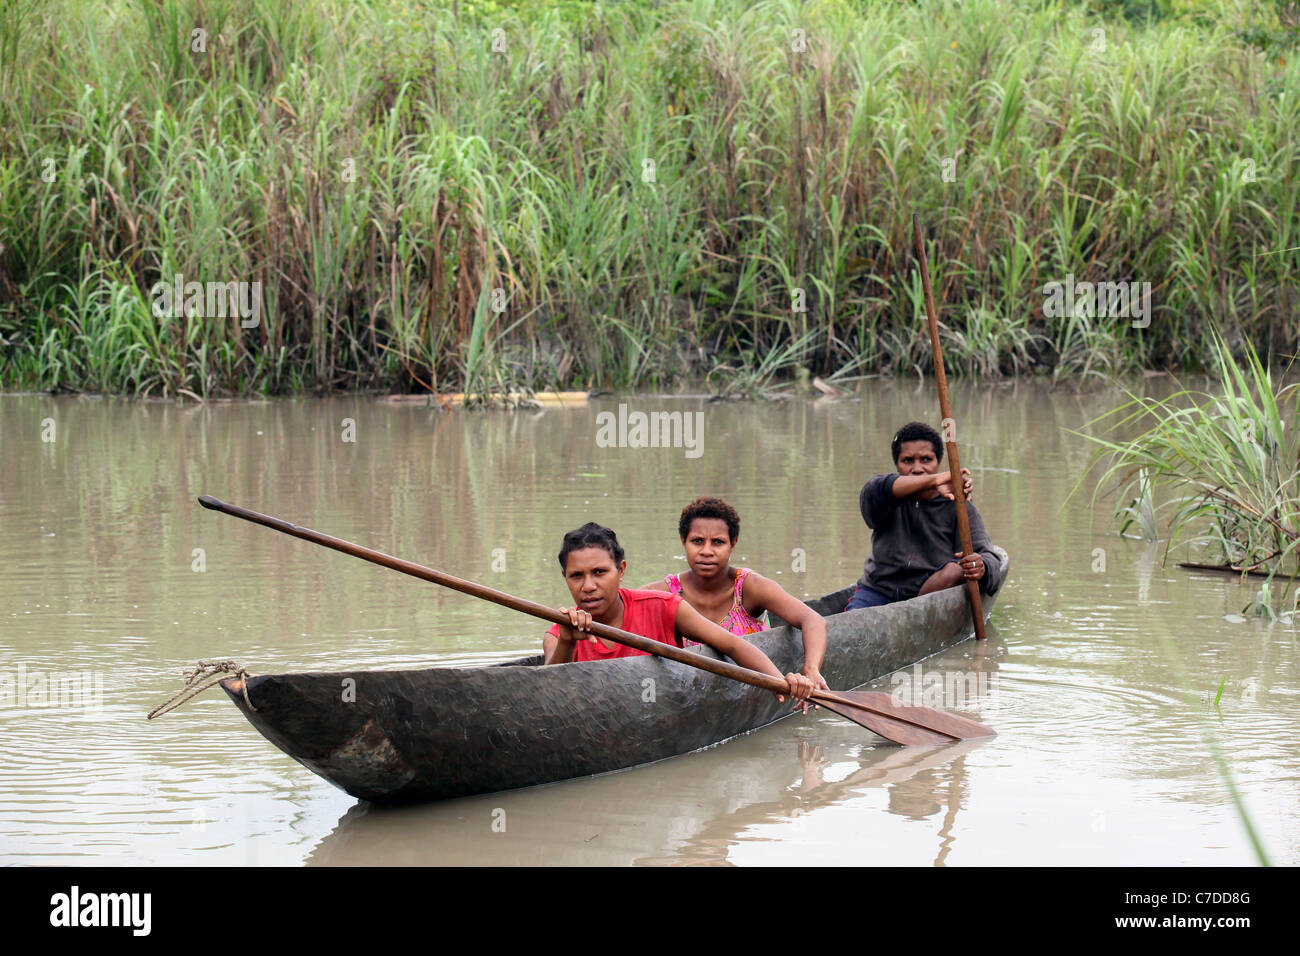 Three girls in a dugout canoe on a river in Papua New Guinea Stock Photo